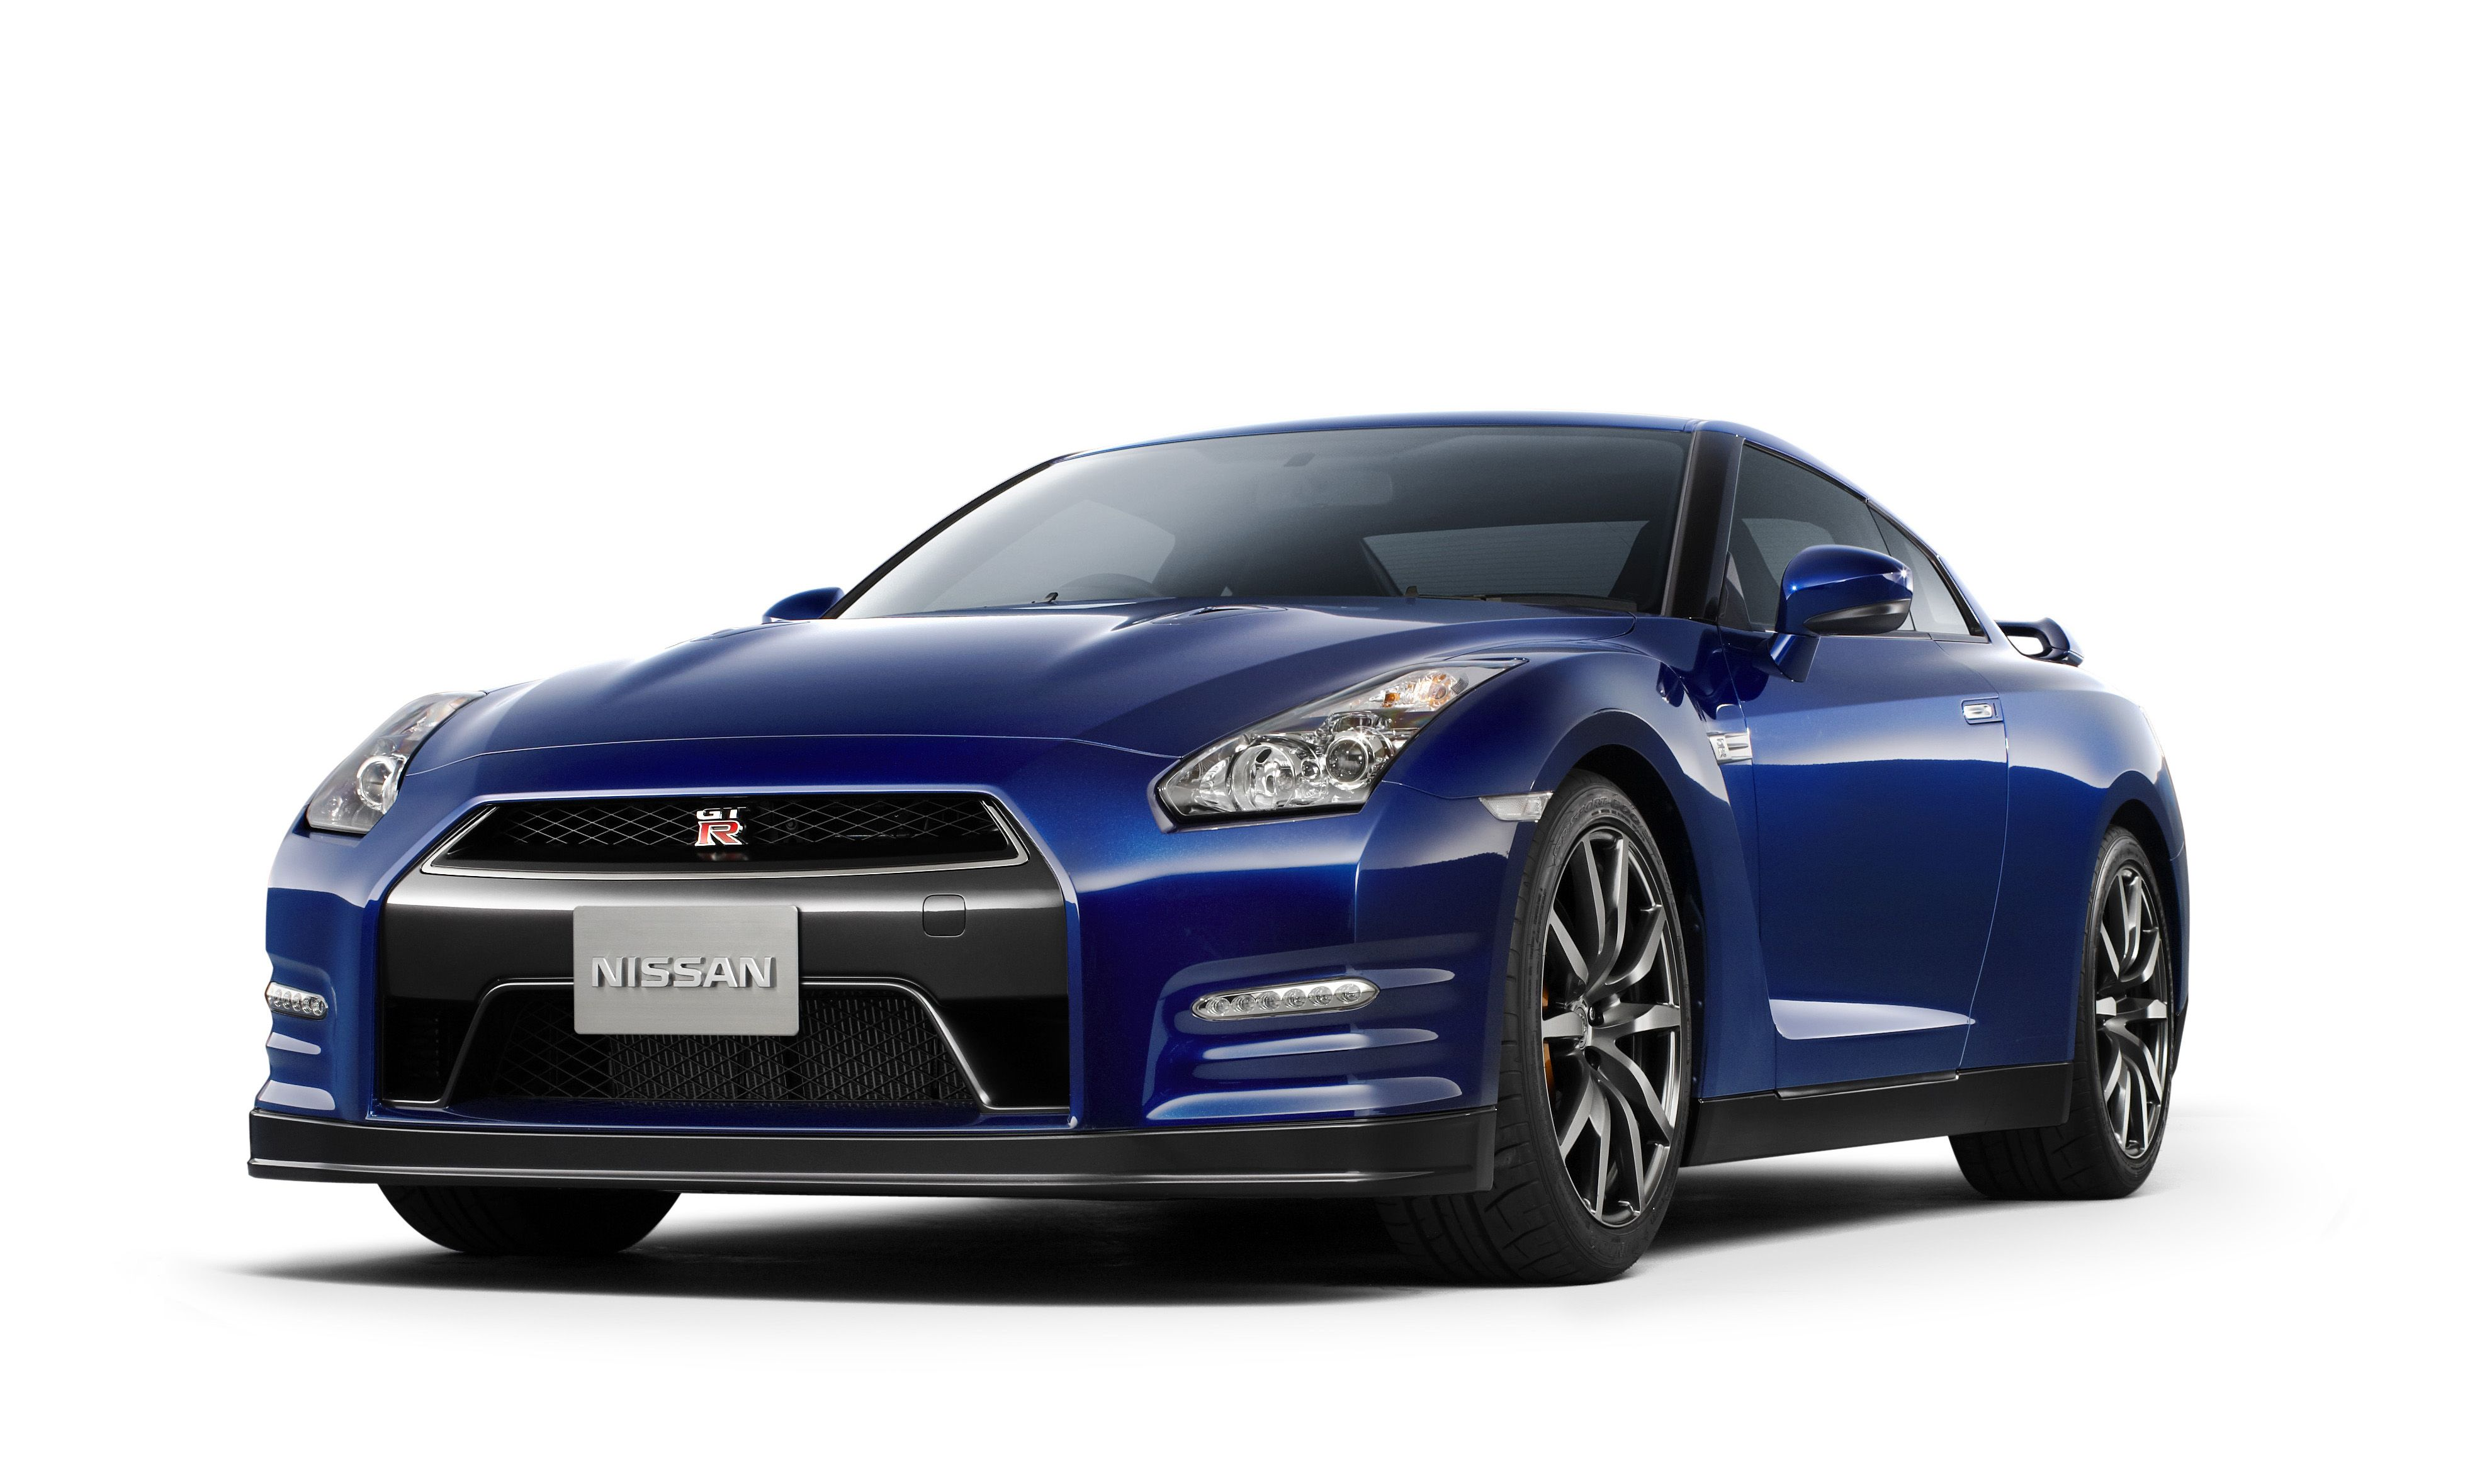 View Our Large Collection Of Used 2012 Nissan GT R 2 Doors Coupe Sport Cars  For Sale Today At Great Prices. We Have The Nissan GT R Premium, ...